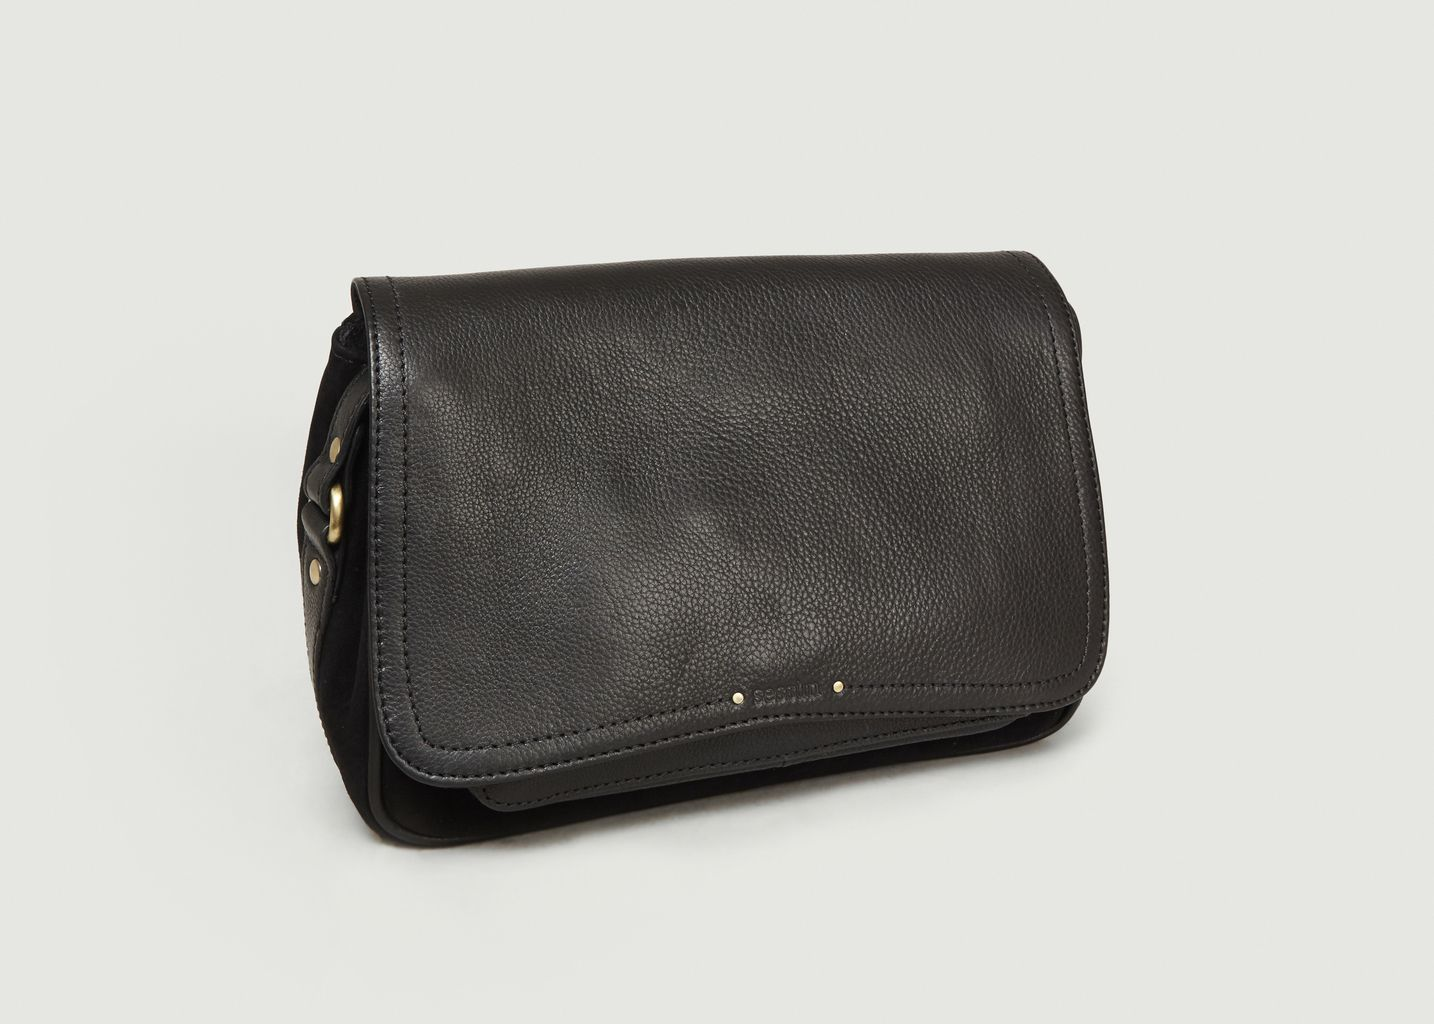 Sac Besace Tano Leather - Sessun